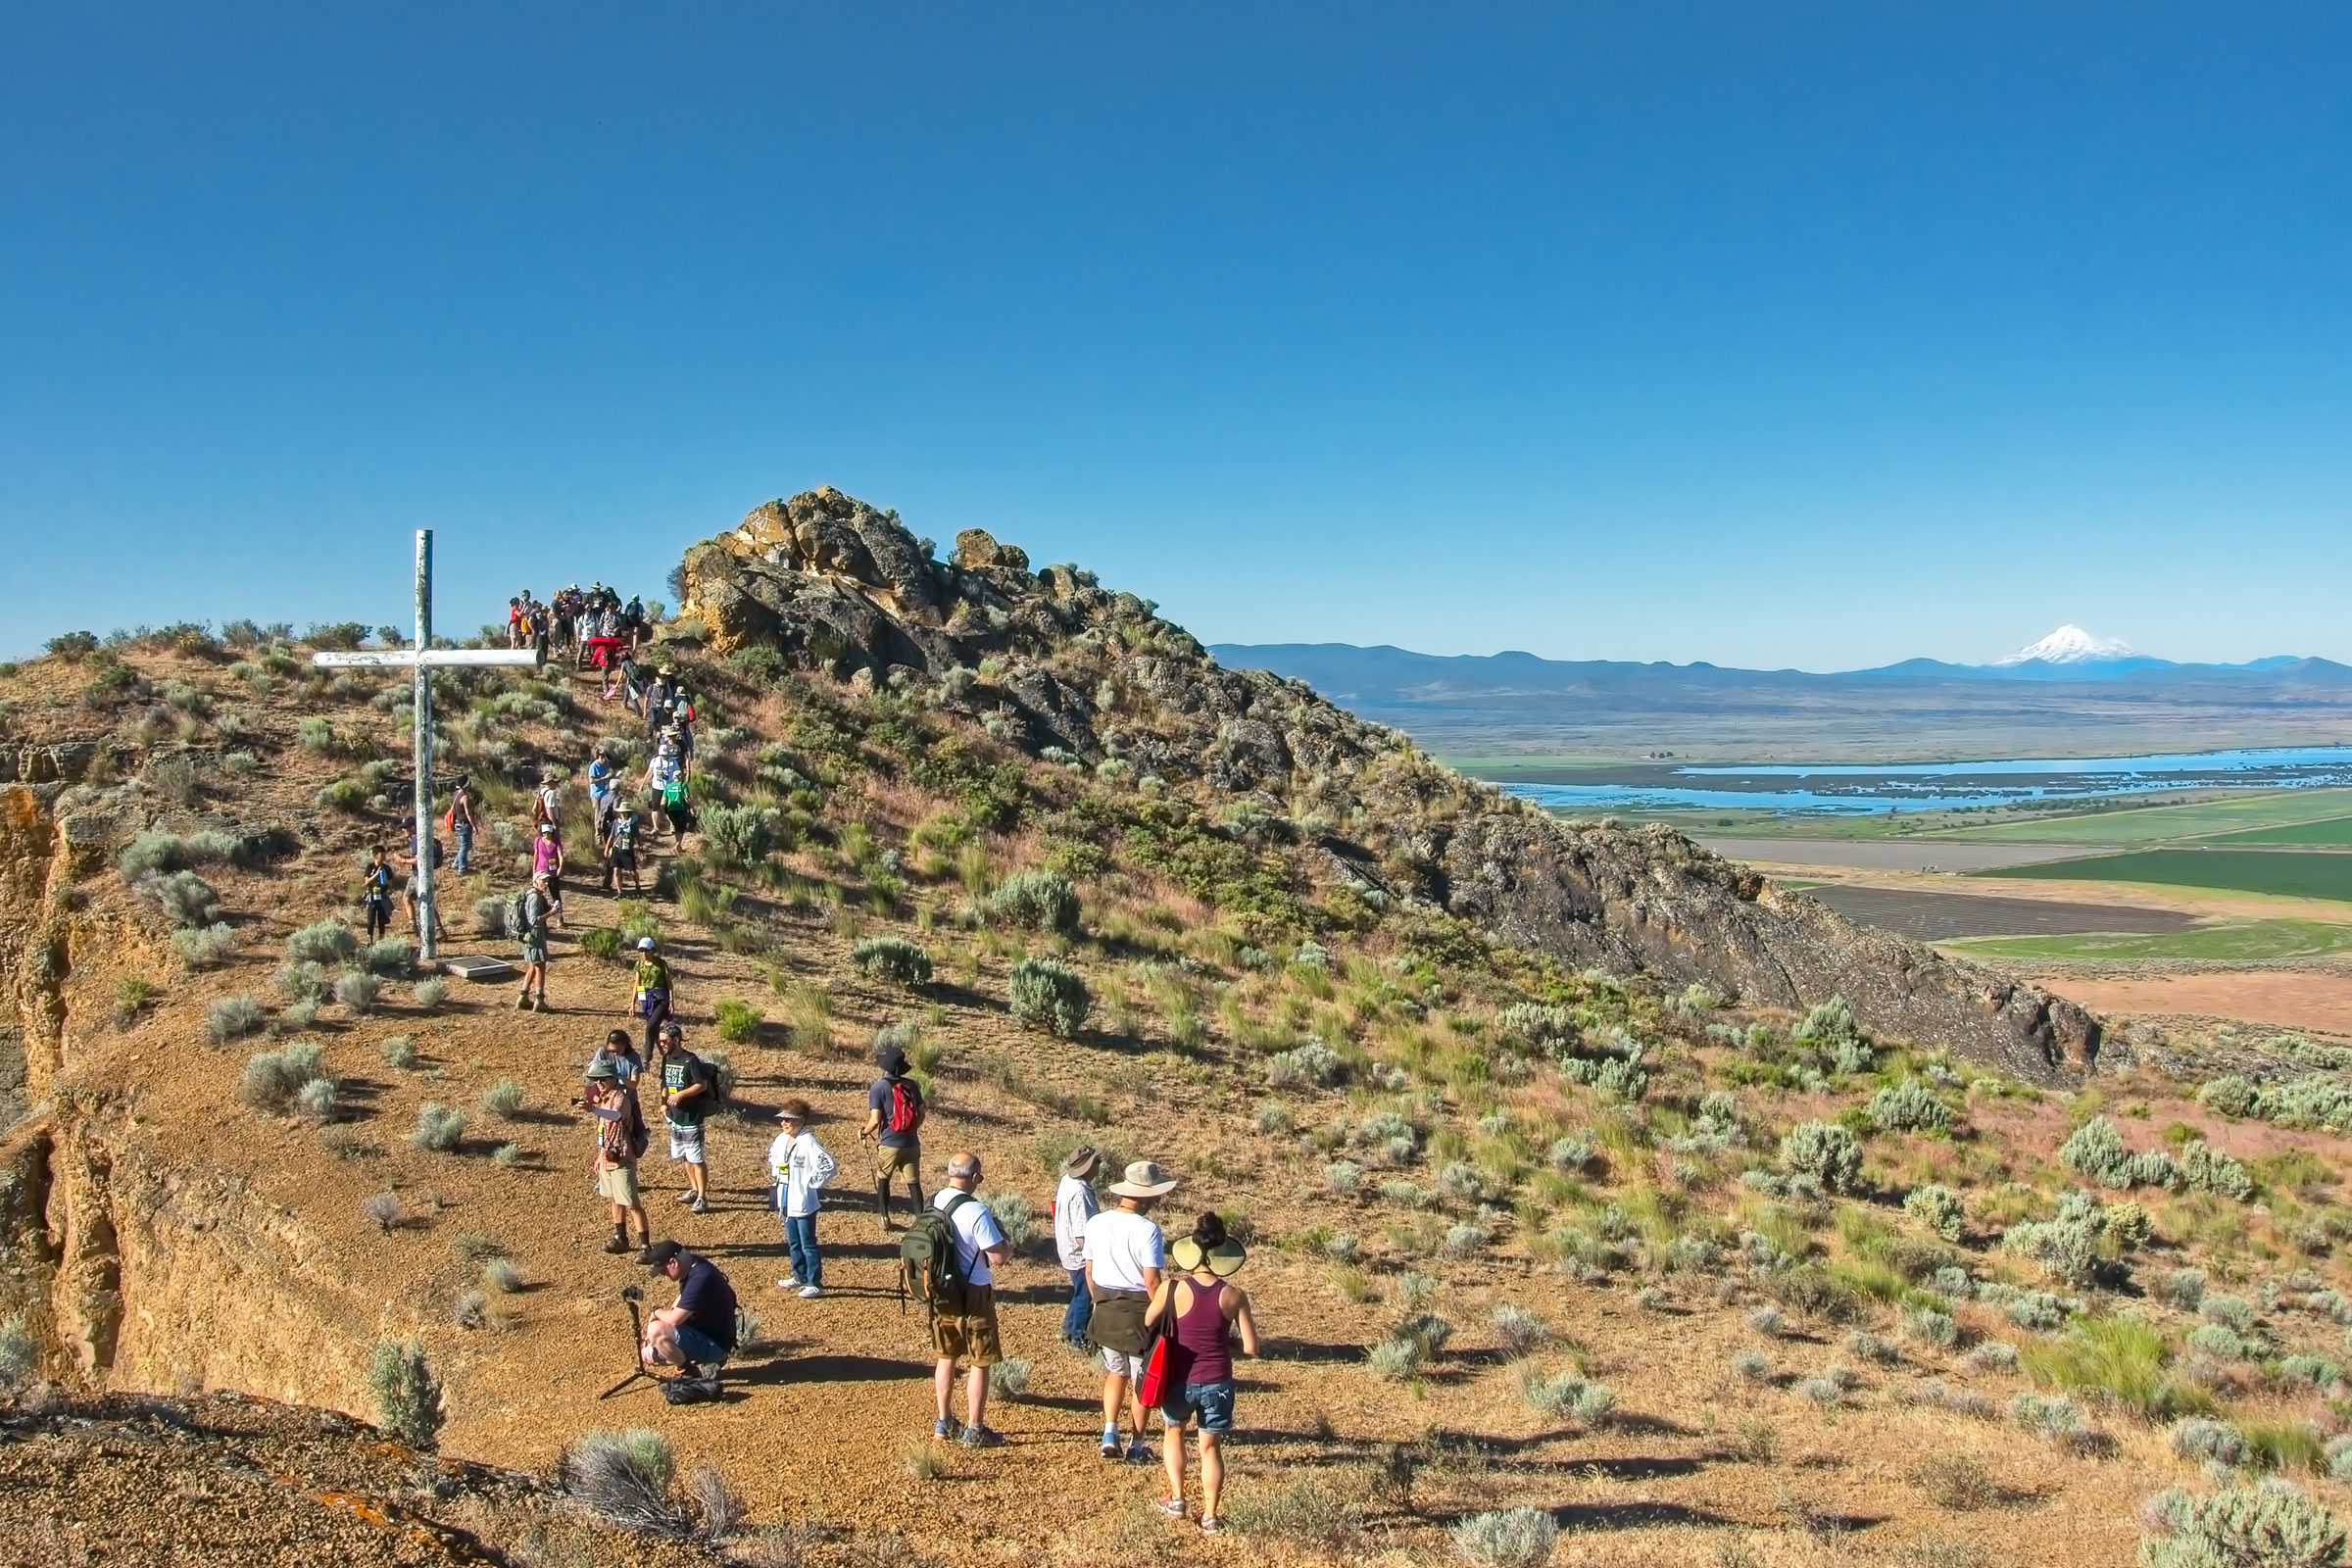 The Tule Lake Segregation Center in California once held 18,000 incarcerees. A hike to the top of Castle Rock gives a view of the memorial, the neighboring national wildlife refuge, and the larger Klamath Valley. Glenn Nelson